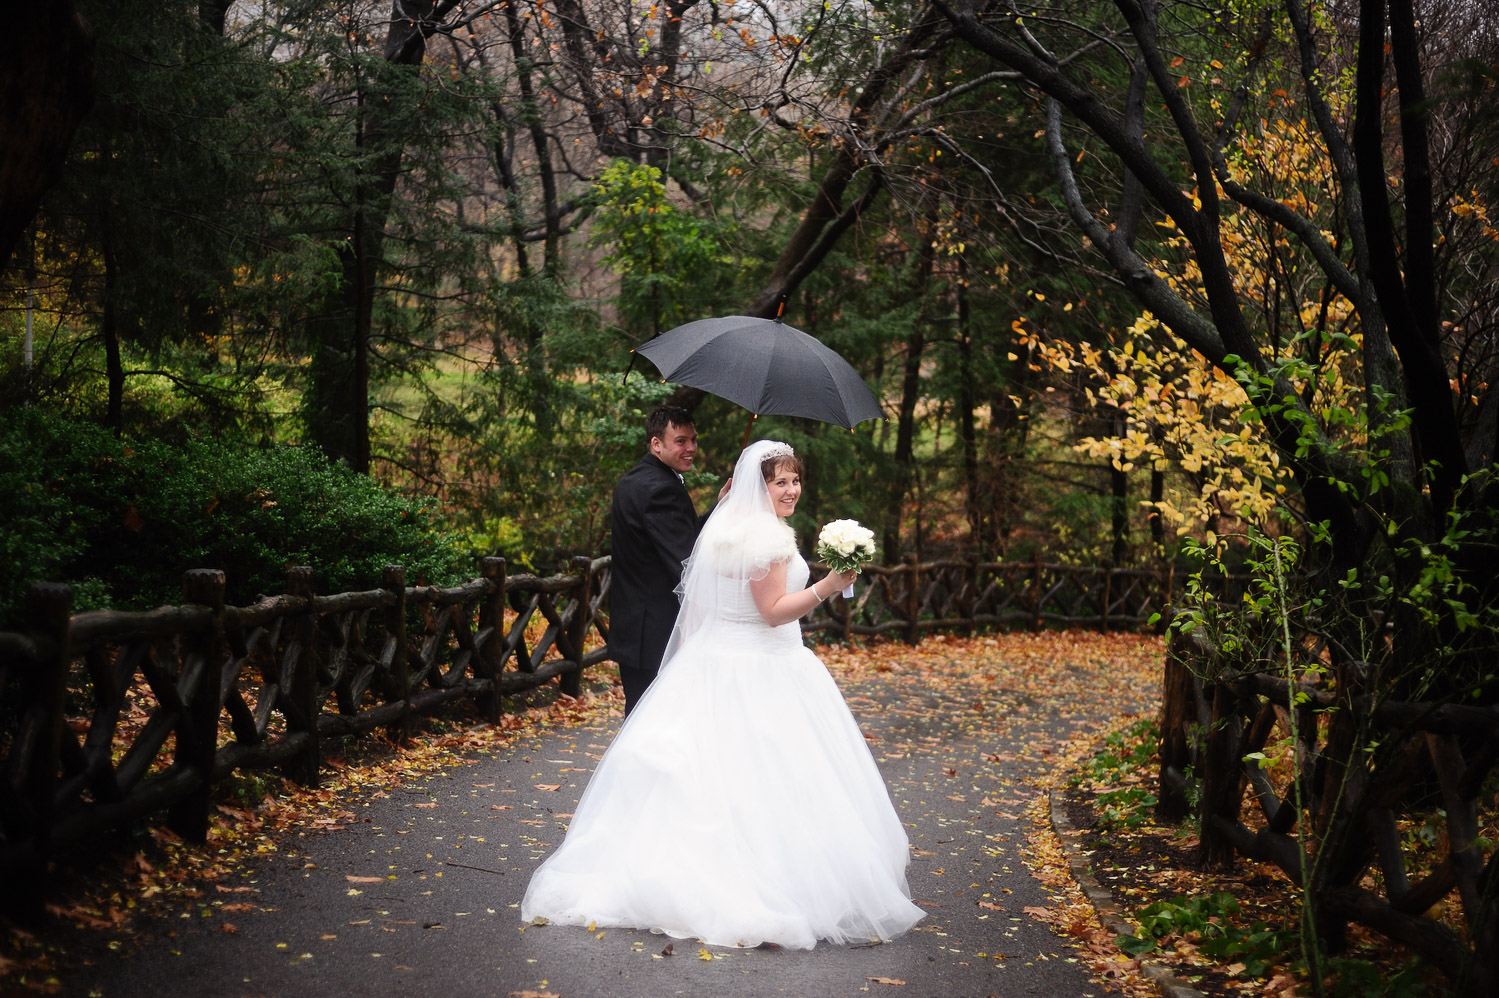 nyc belvedere castle mini wedding photo of couple with umbrella by wendy g photography